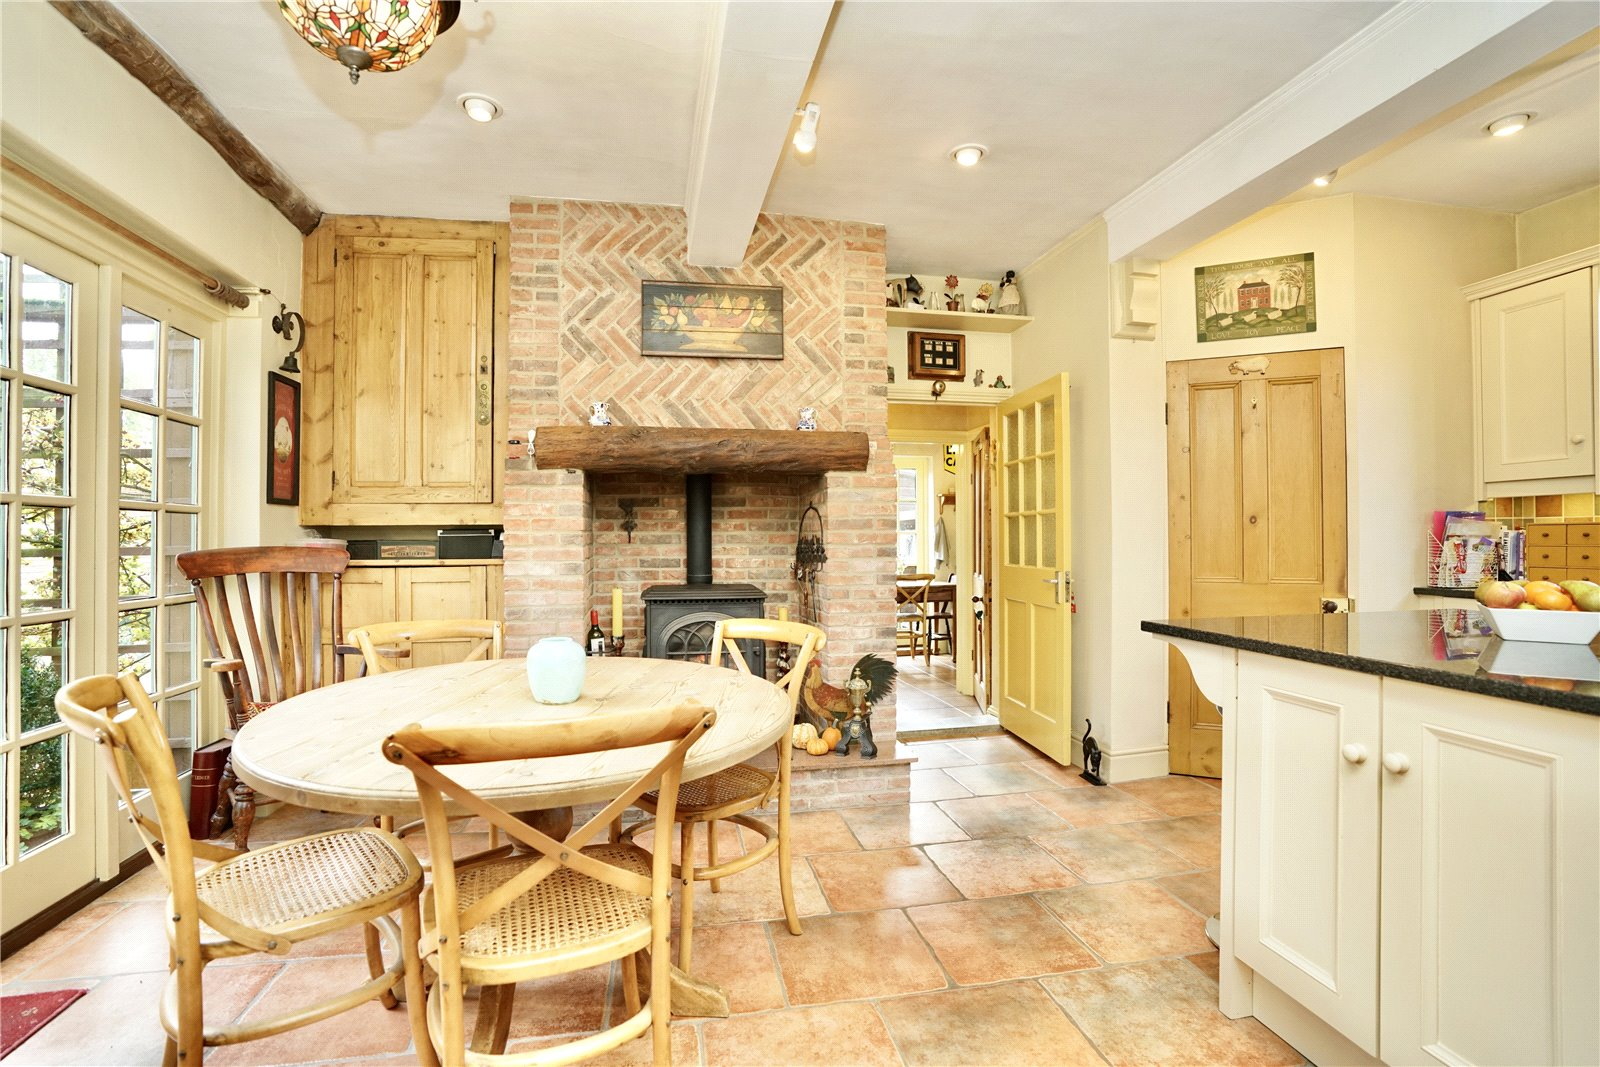 4 bed house for sale in Great Staughton  - Property Image 4